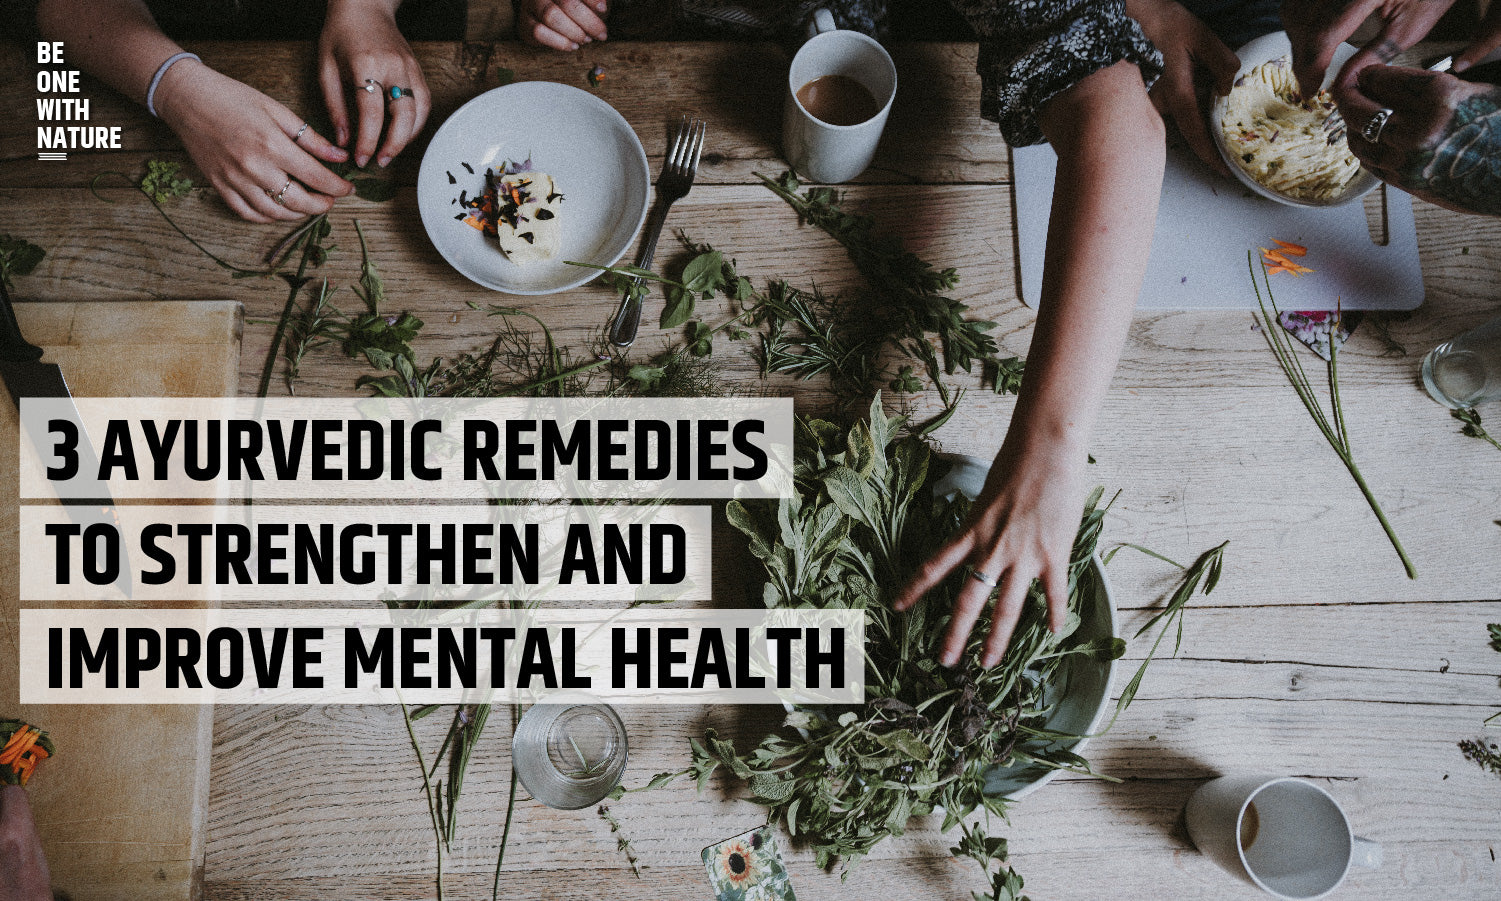 3 Ayurvedic remedies to strengthen and improve mental health